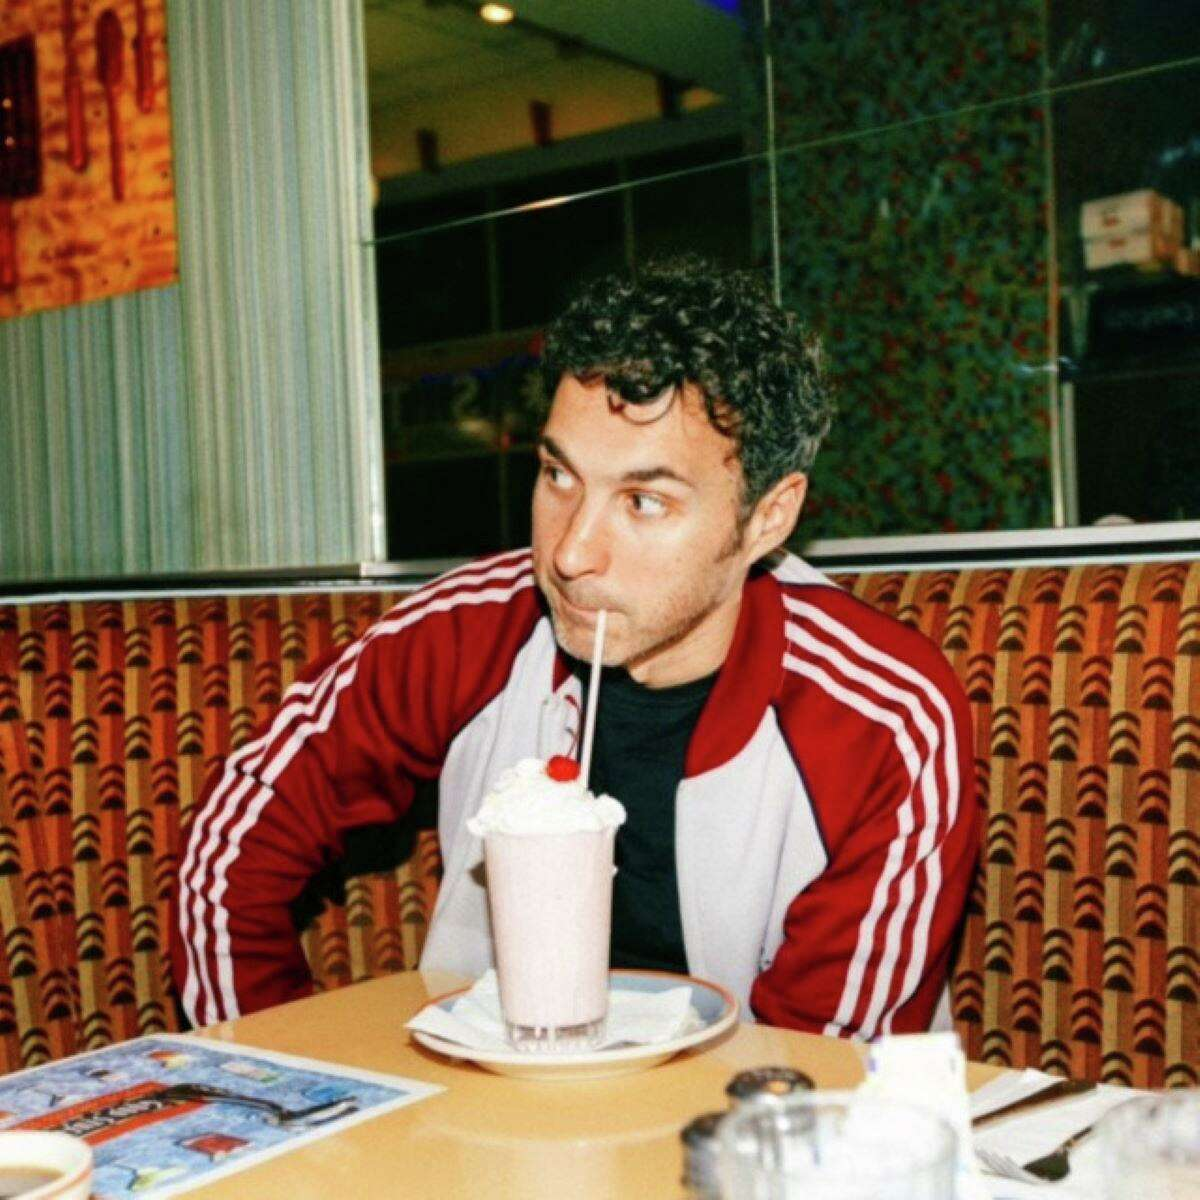 Comedian Mark Normand will perform at The Wall Street Theater in Norwalk, Dec. 20. The show will also be livestreamed. Q: You were born and raised in New Orleans, where you spent much of your time shooting film shorts. What kind? A: My friends and I would shoot a lot of spoofs. We loved